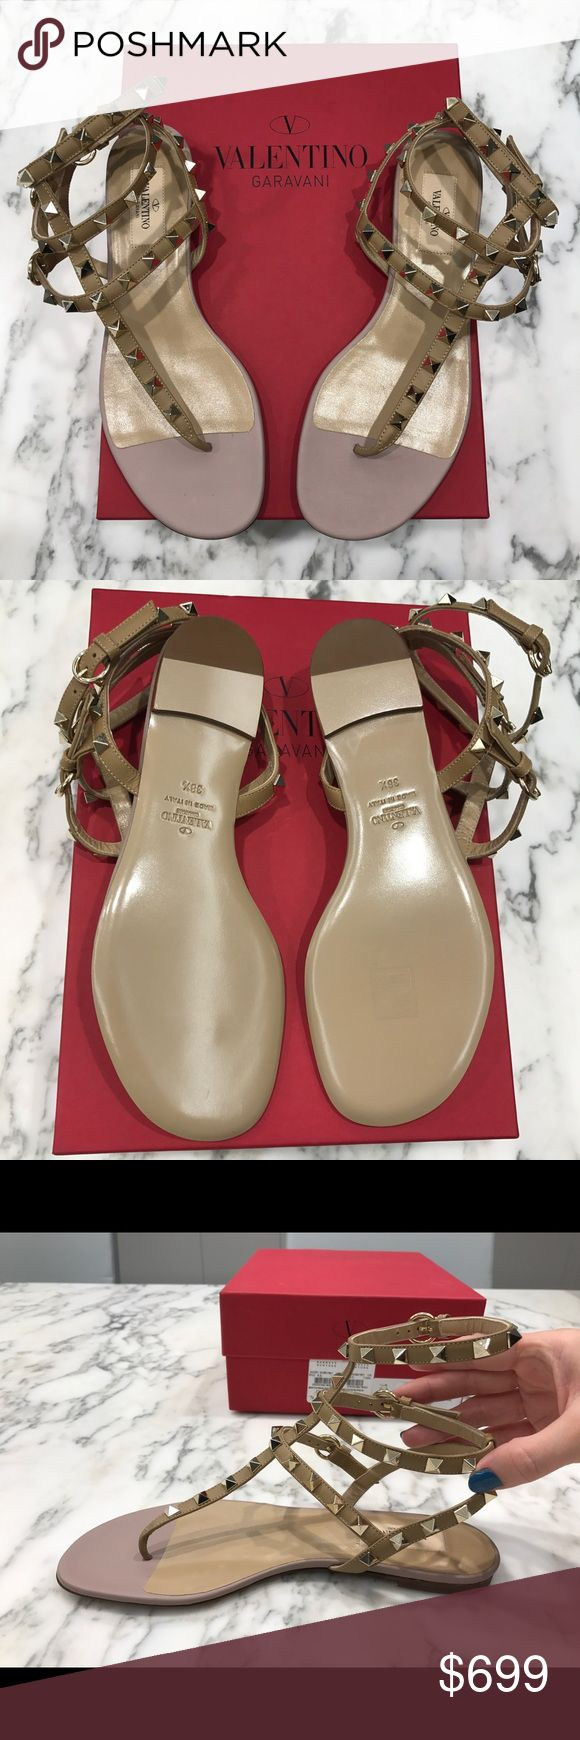 Valentino Rockstud Gladiator - Flat Thong - Alpaca These are brand new in box, never been worn, authentic Valentino Rockstud Flat Thong Gladiators in Alpaca. They are so beautiful but the size (38.5) is just a bit too small for me.  I bought them to attend a wedding in California last year and soon after found out I was pregnant. Just before the wedding I tried the shoe on in my apartment (on carpet) to make sure they would work with the dress i was wearing and they no longer fit. I hope…